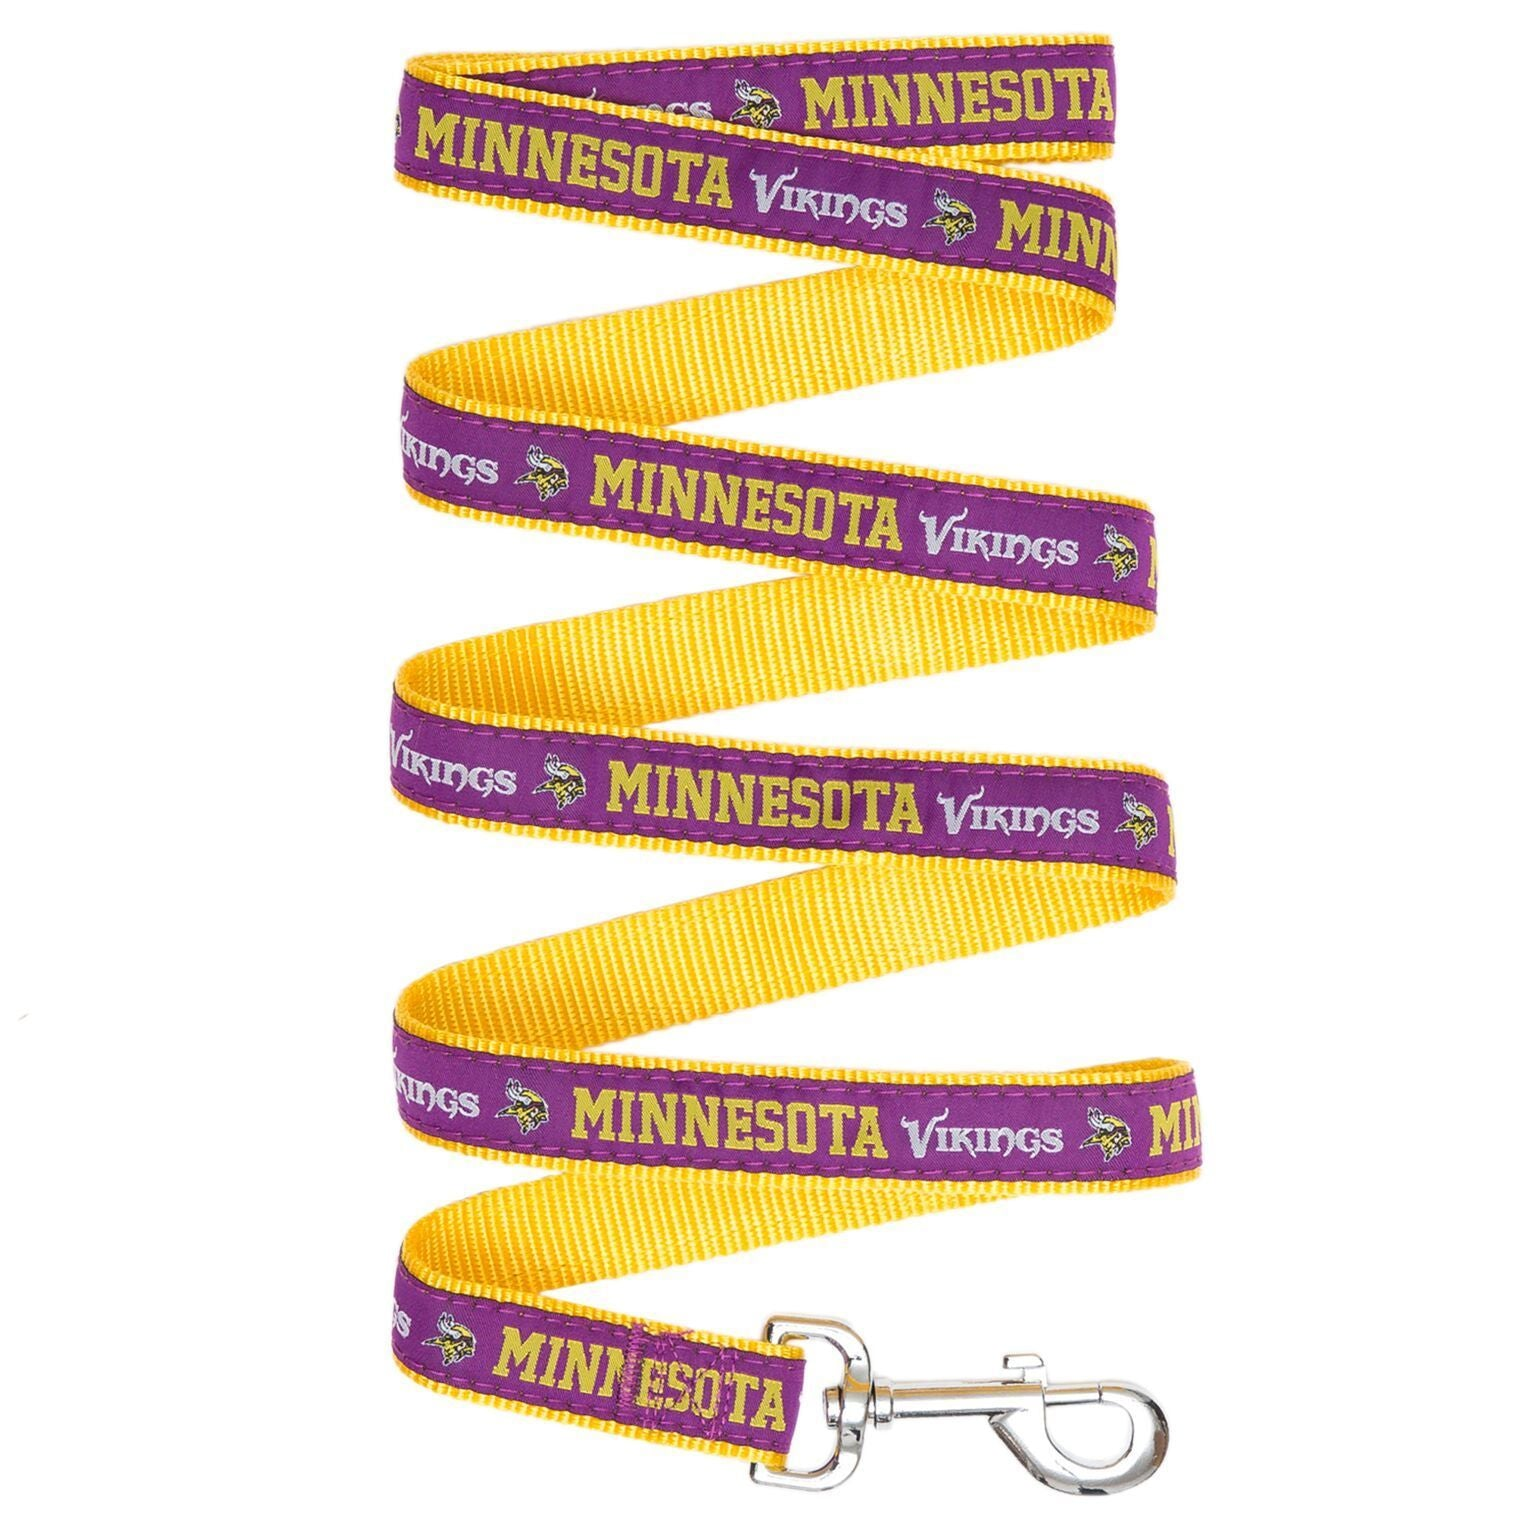 Minnesota Vikings Football Jersey Cheerleading Uniform Collar Leash - Jersey Champs - Custom Basketball, Baseball, Football & Hockey Jerseys